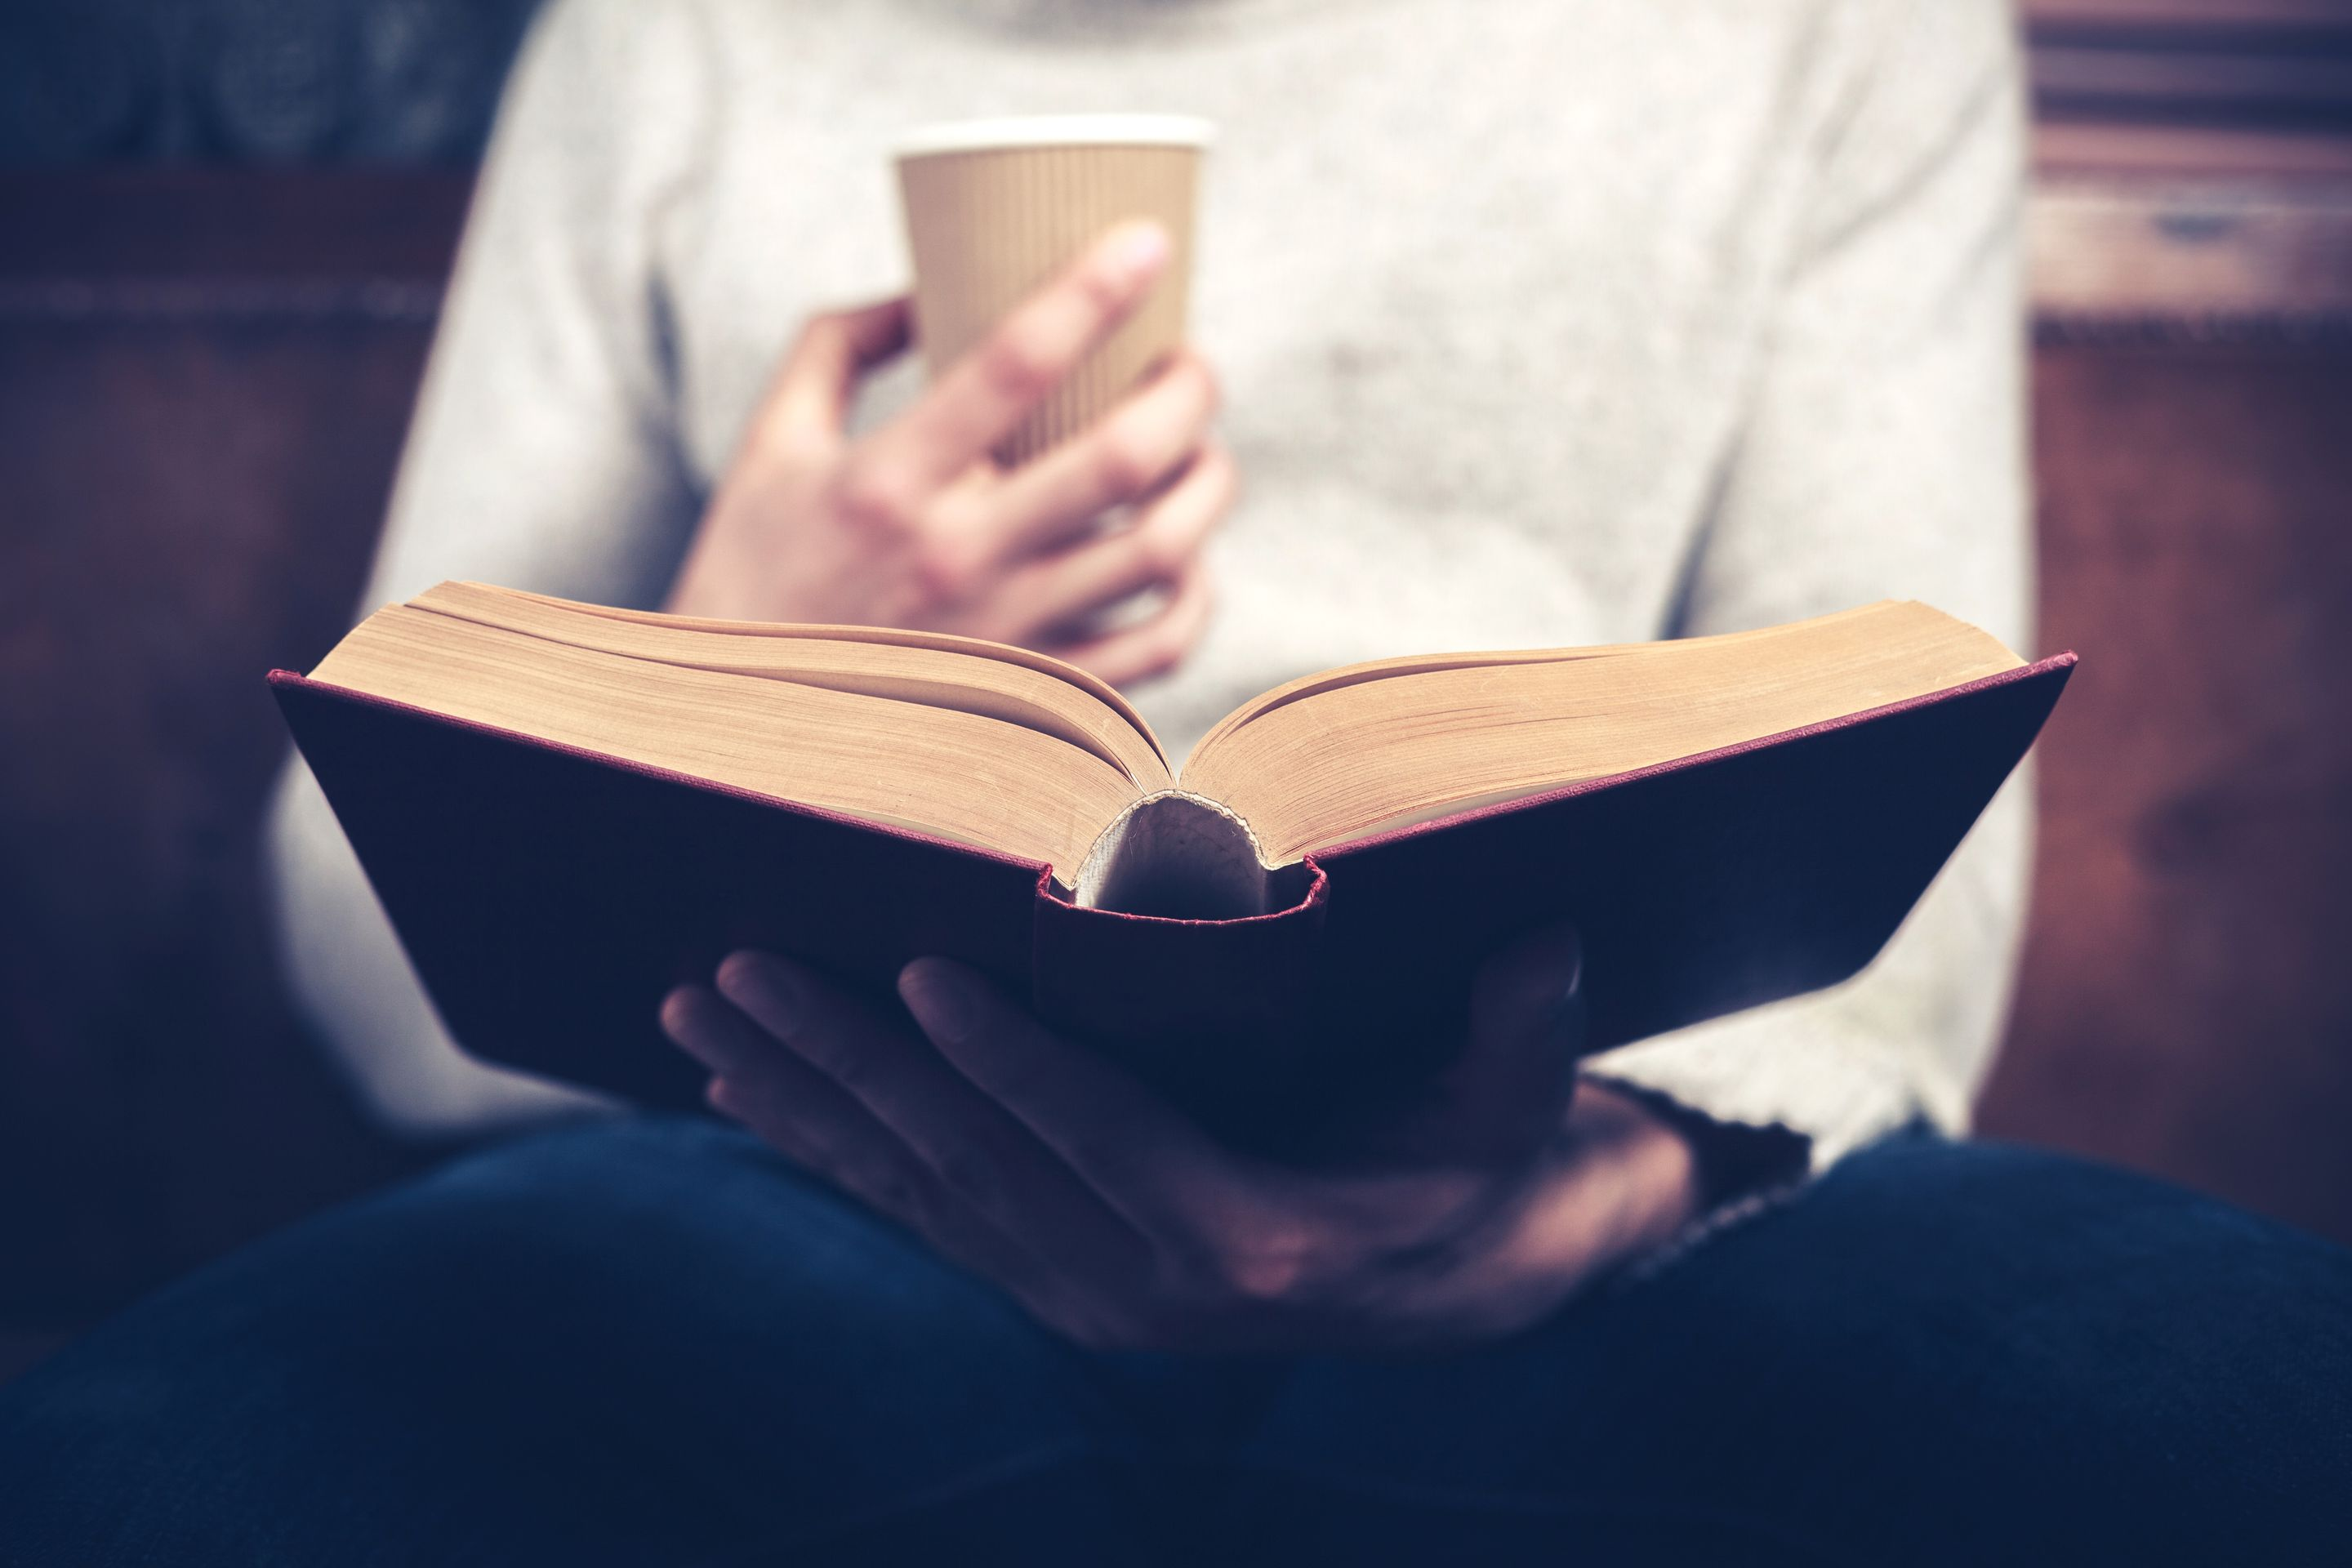 A man reading a book with a cup of coffee in his hand